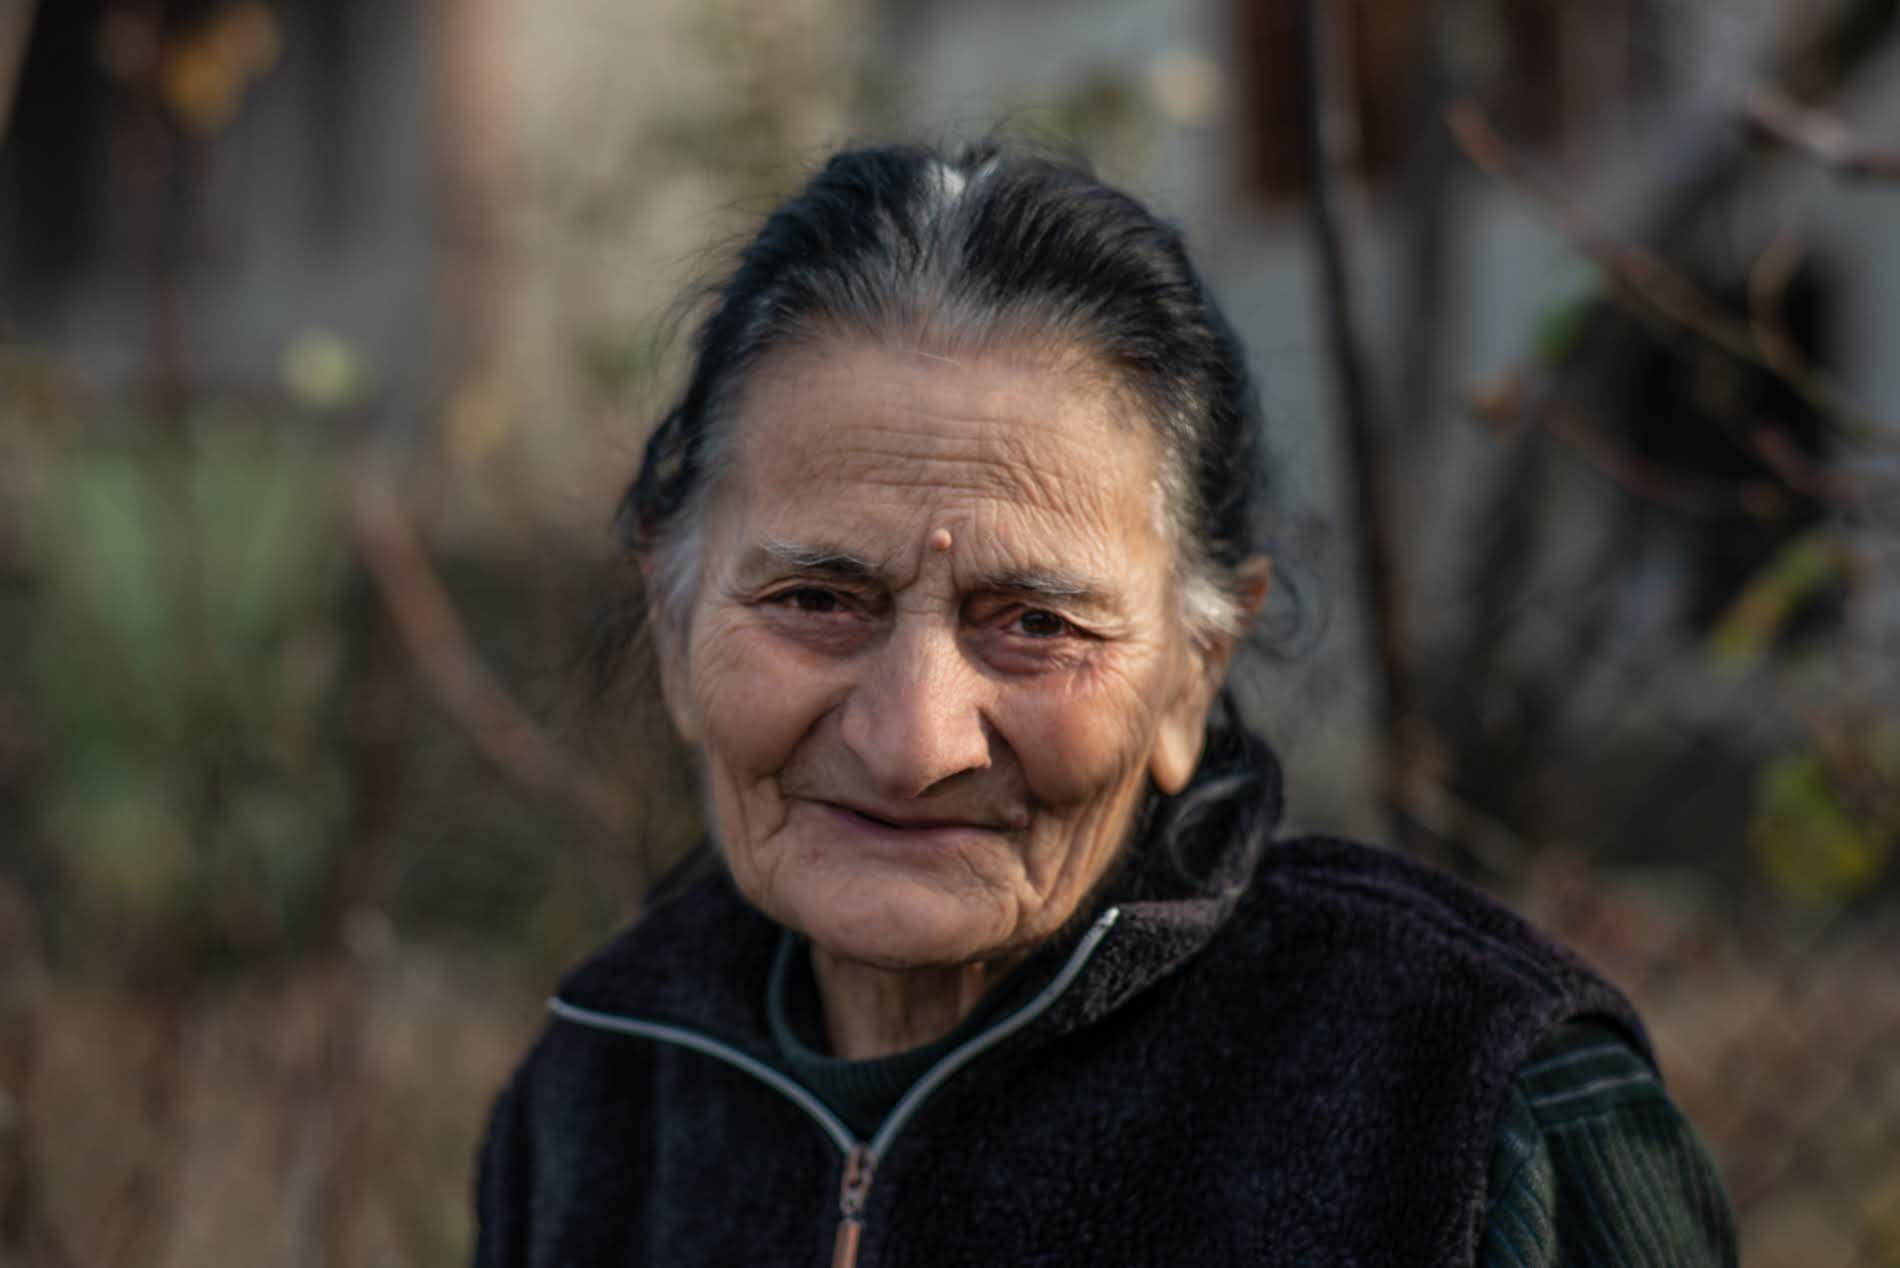 Nunu Natenadze, 81, was the first woman beekeeper in the village. She lives with Lali and helps her take care of the bees.  Photo: Tamuna Chkareuli/OC Media.